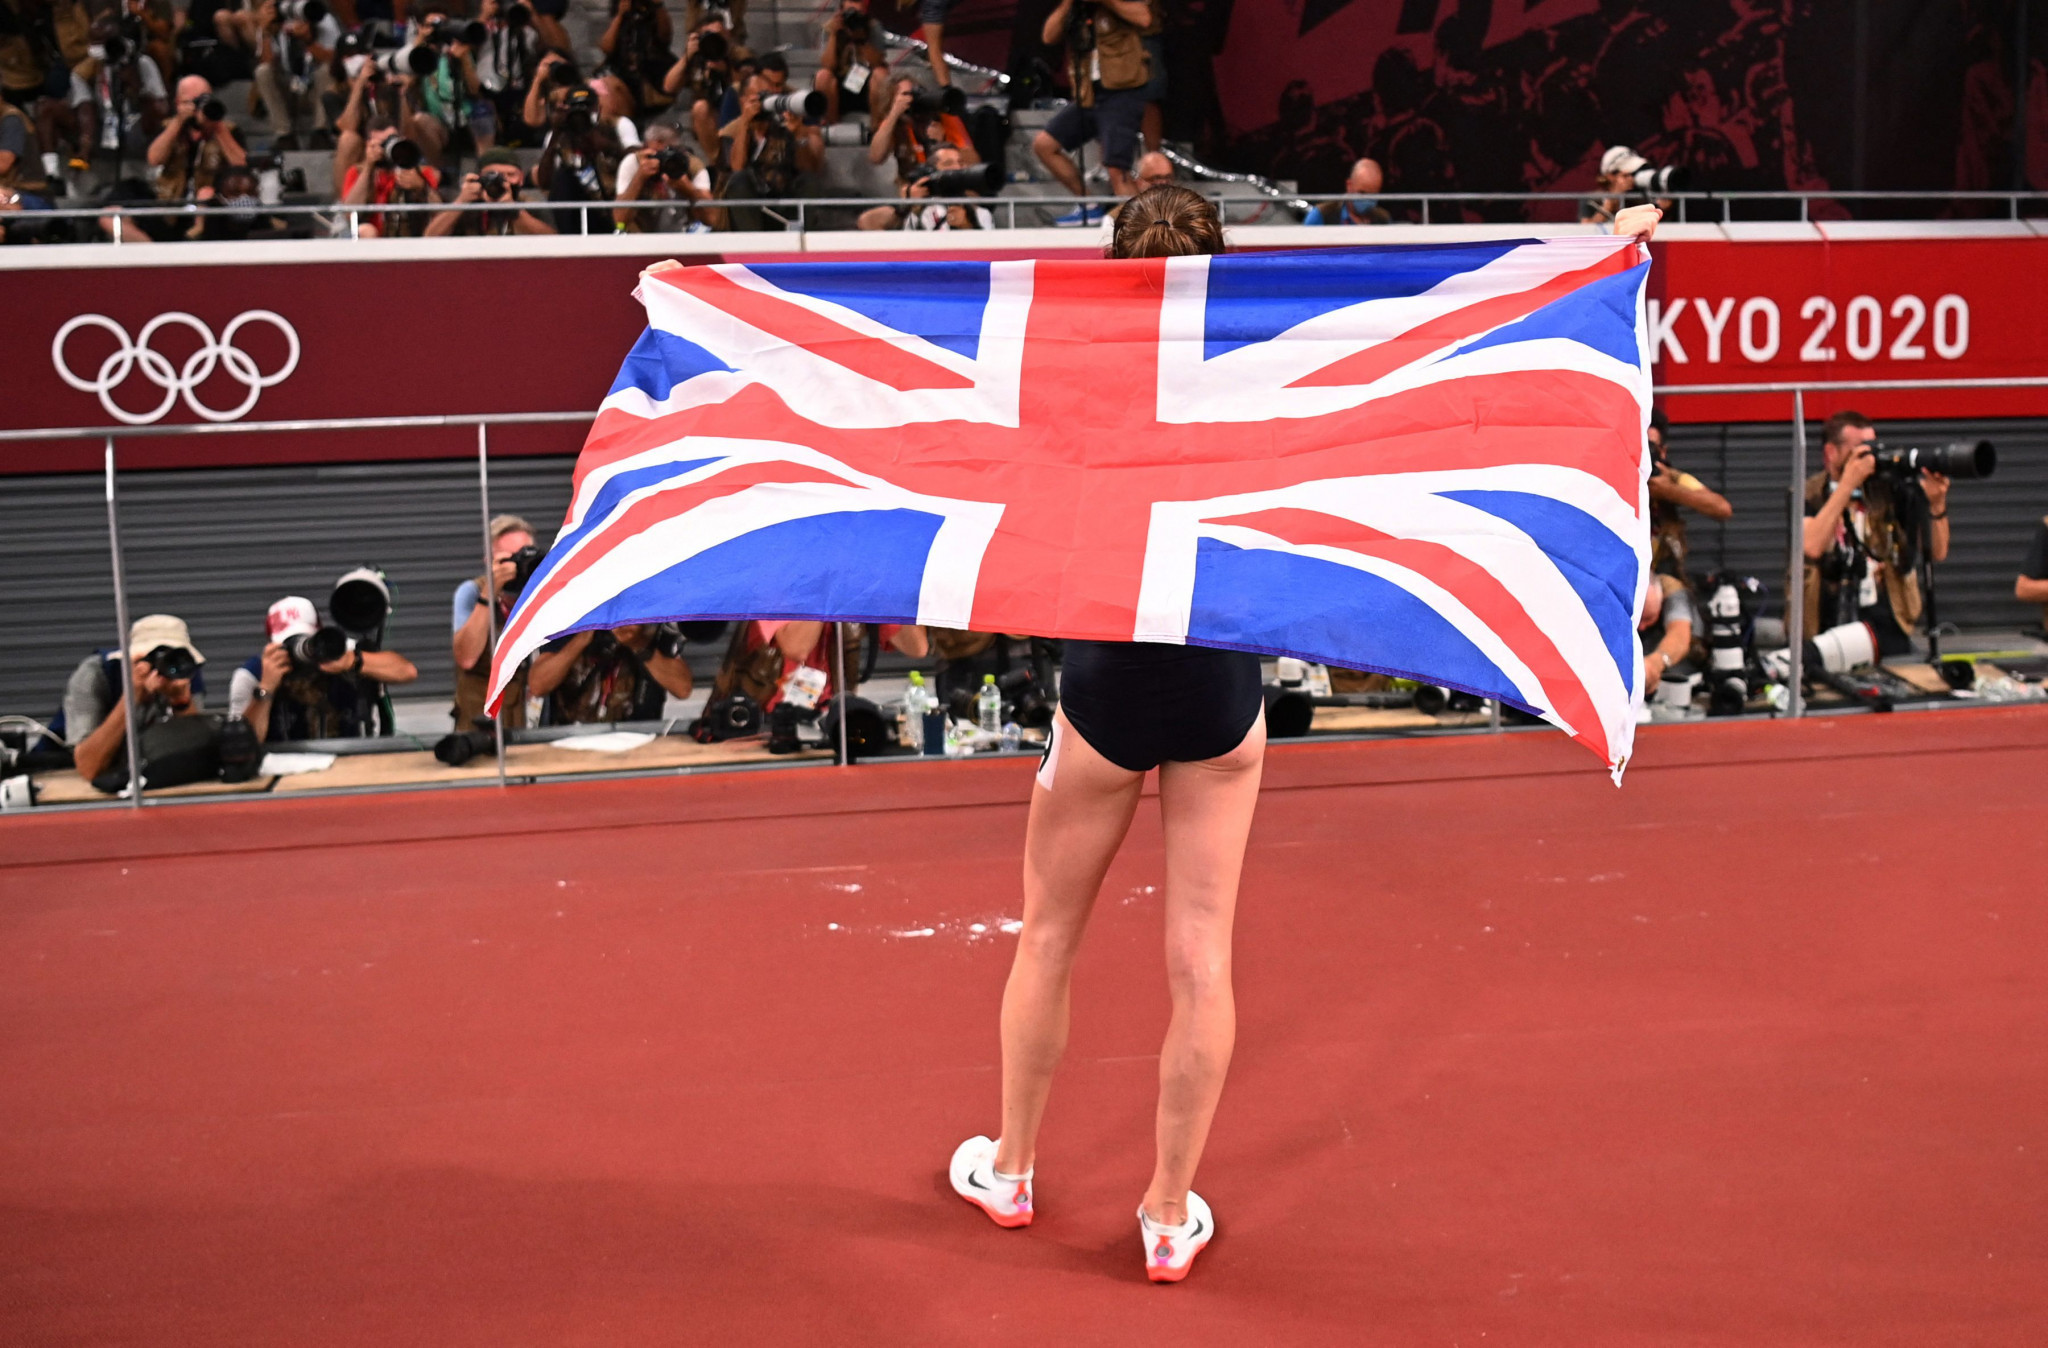 British Government pledges £232 million investment for Paris 2024 Olympic cycle